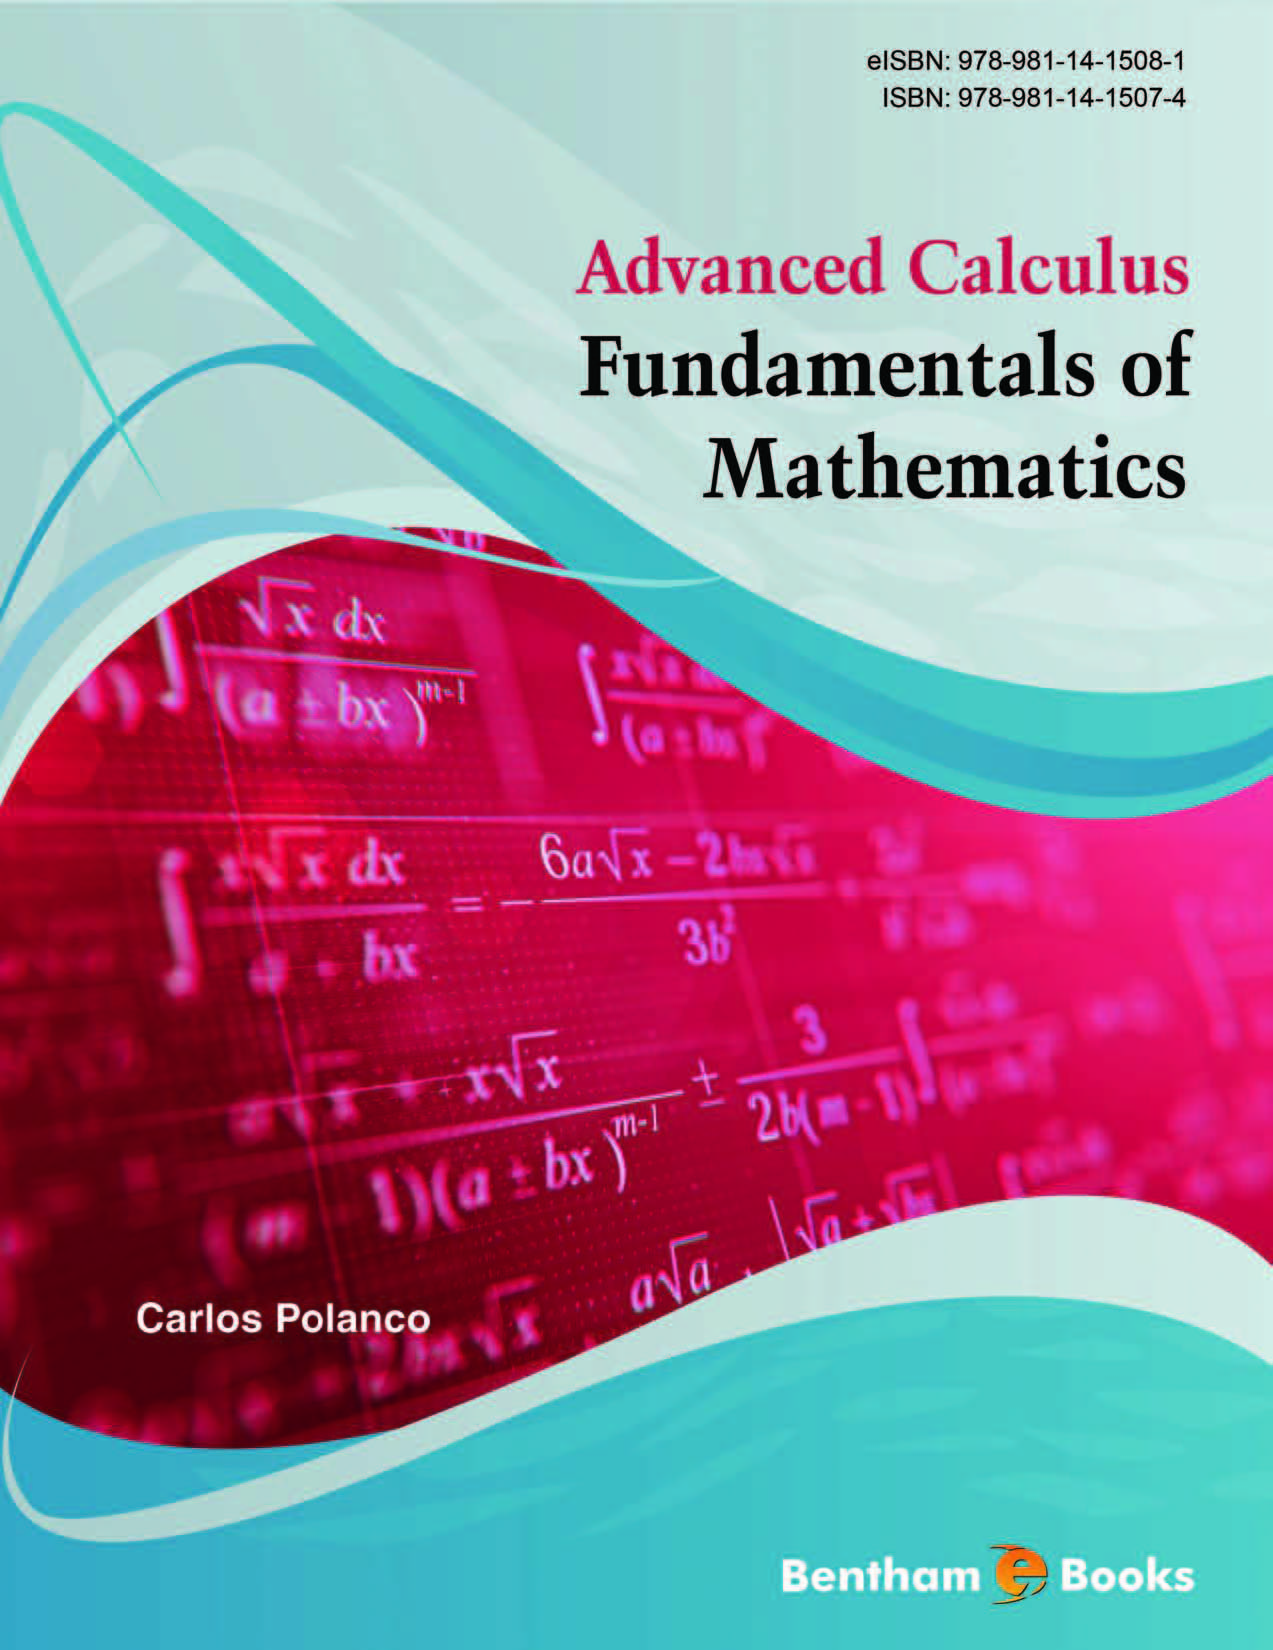 Advanced Calculus - Fundamentals of Mathematics